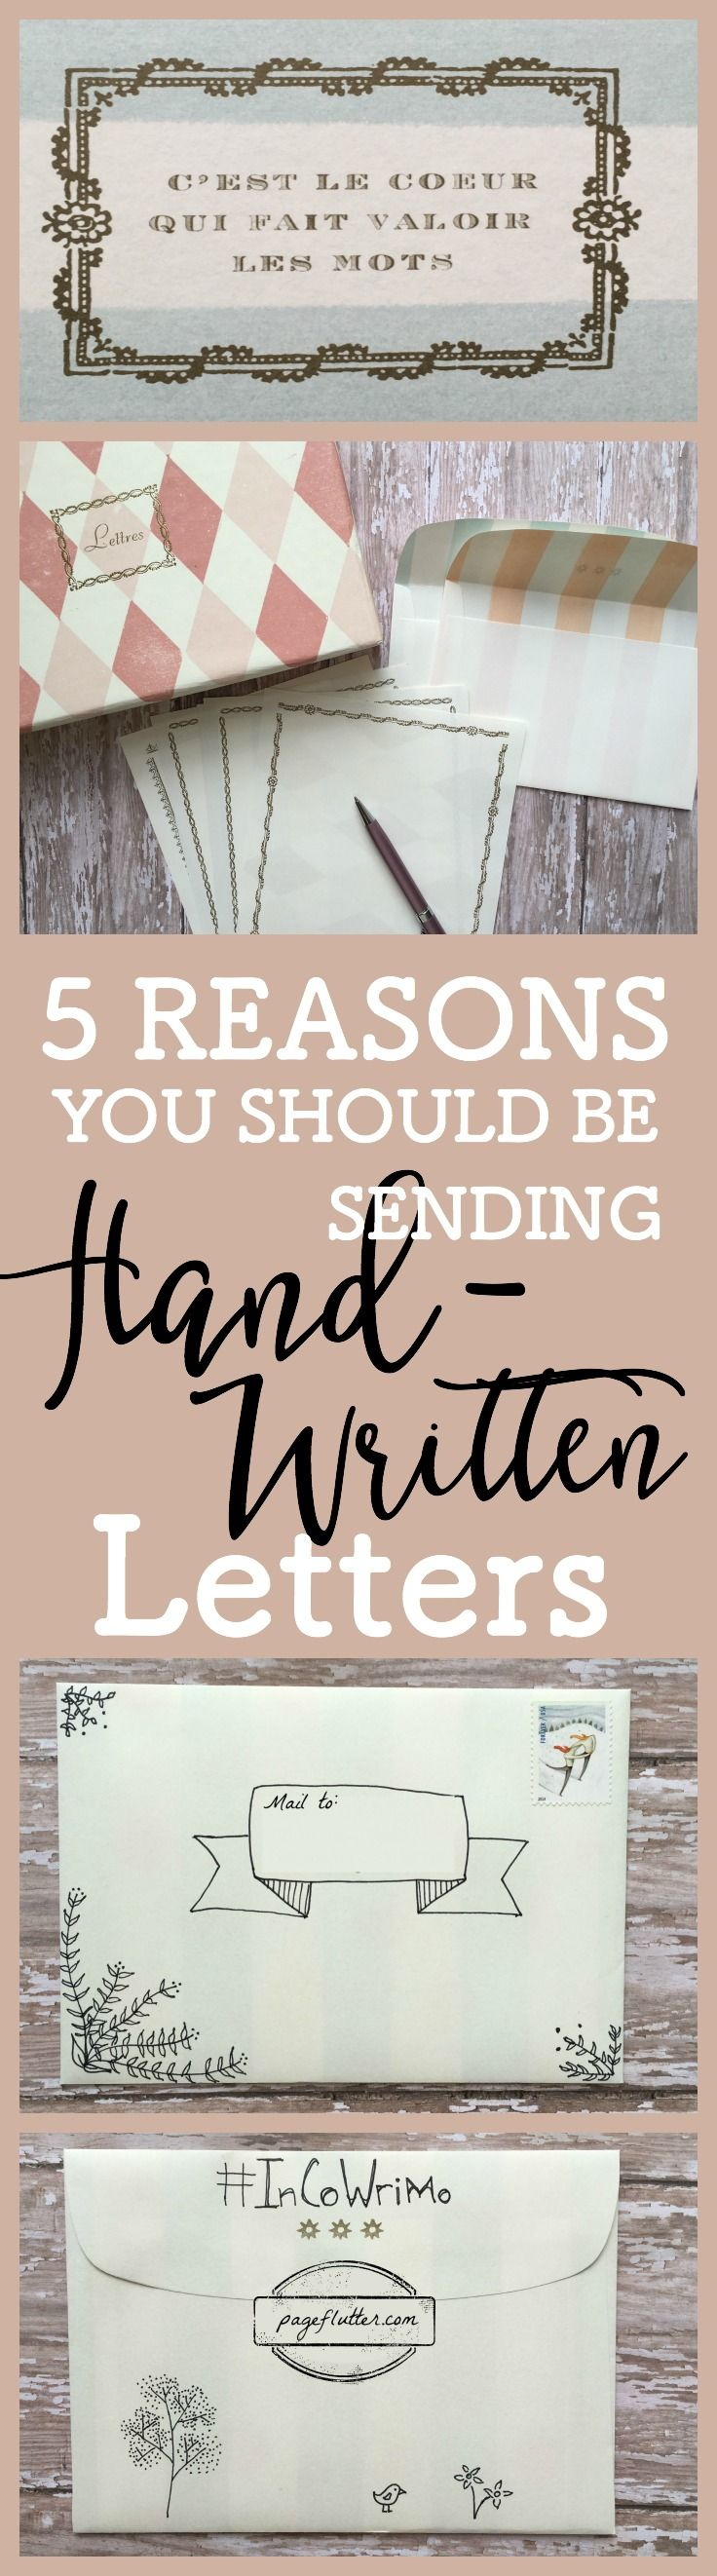 February is #InCoWriMo! In honor of International Correspondence Writing Month, here are 5 Reasons You Should Send Handwritten Letters.